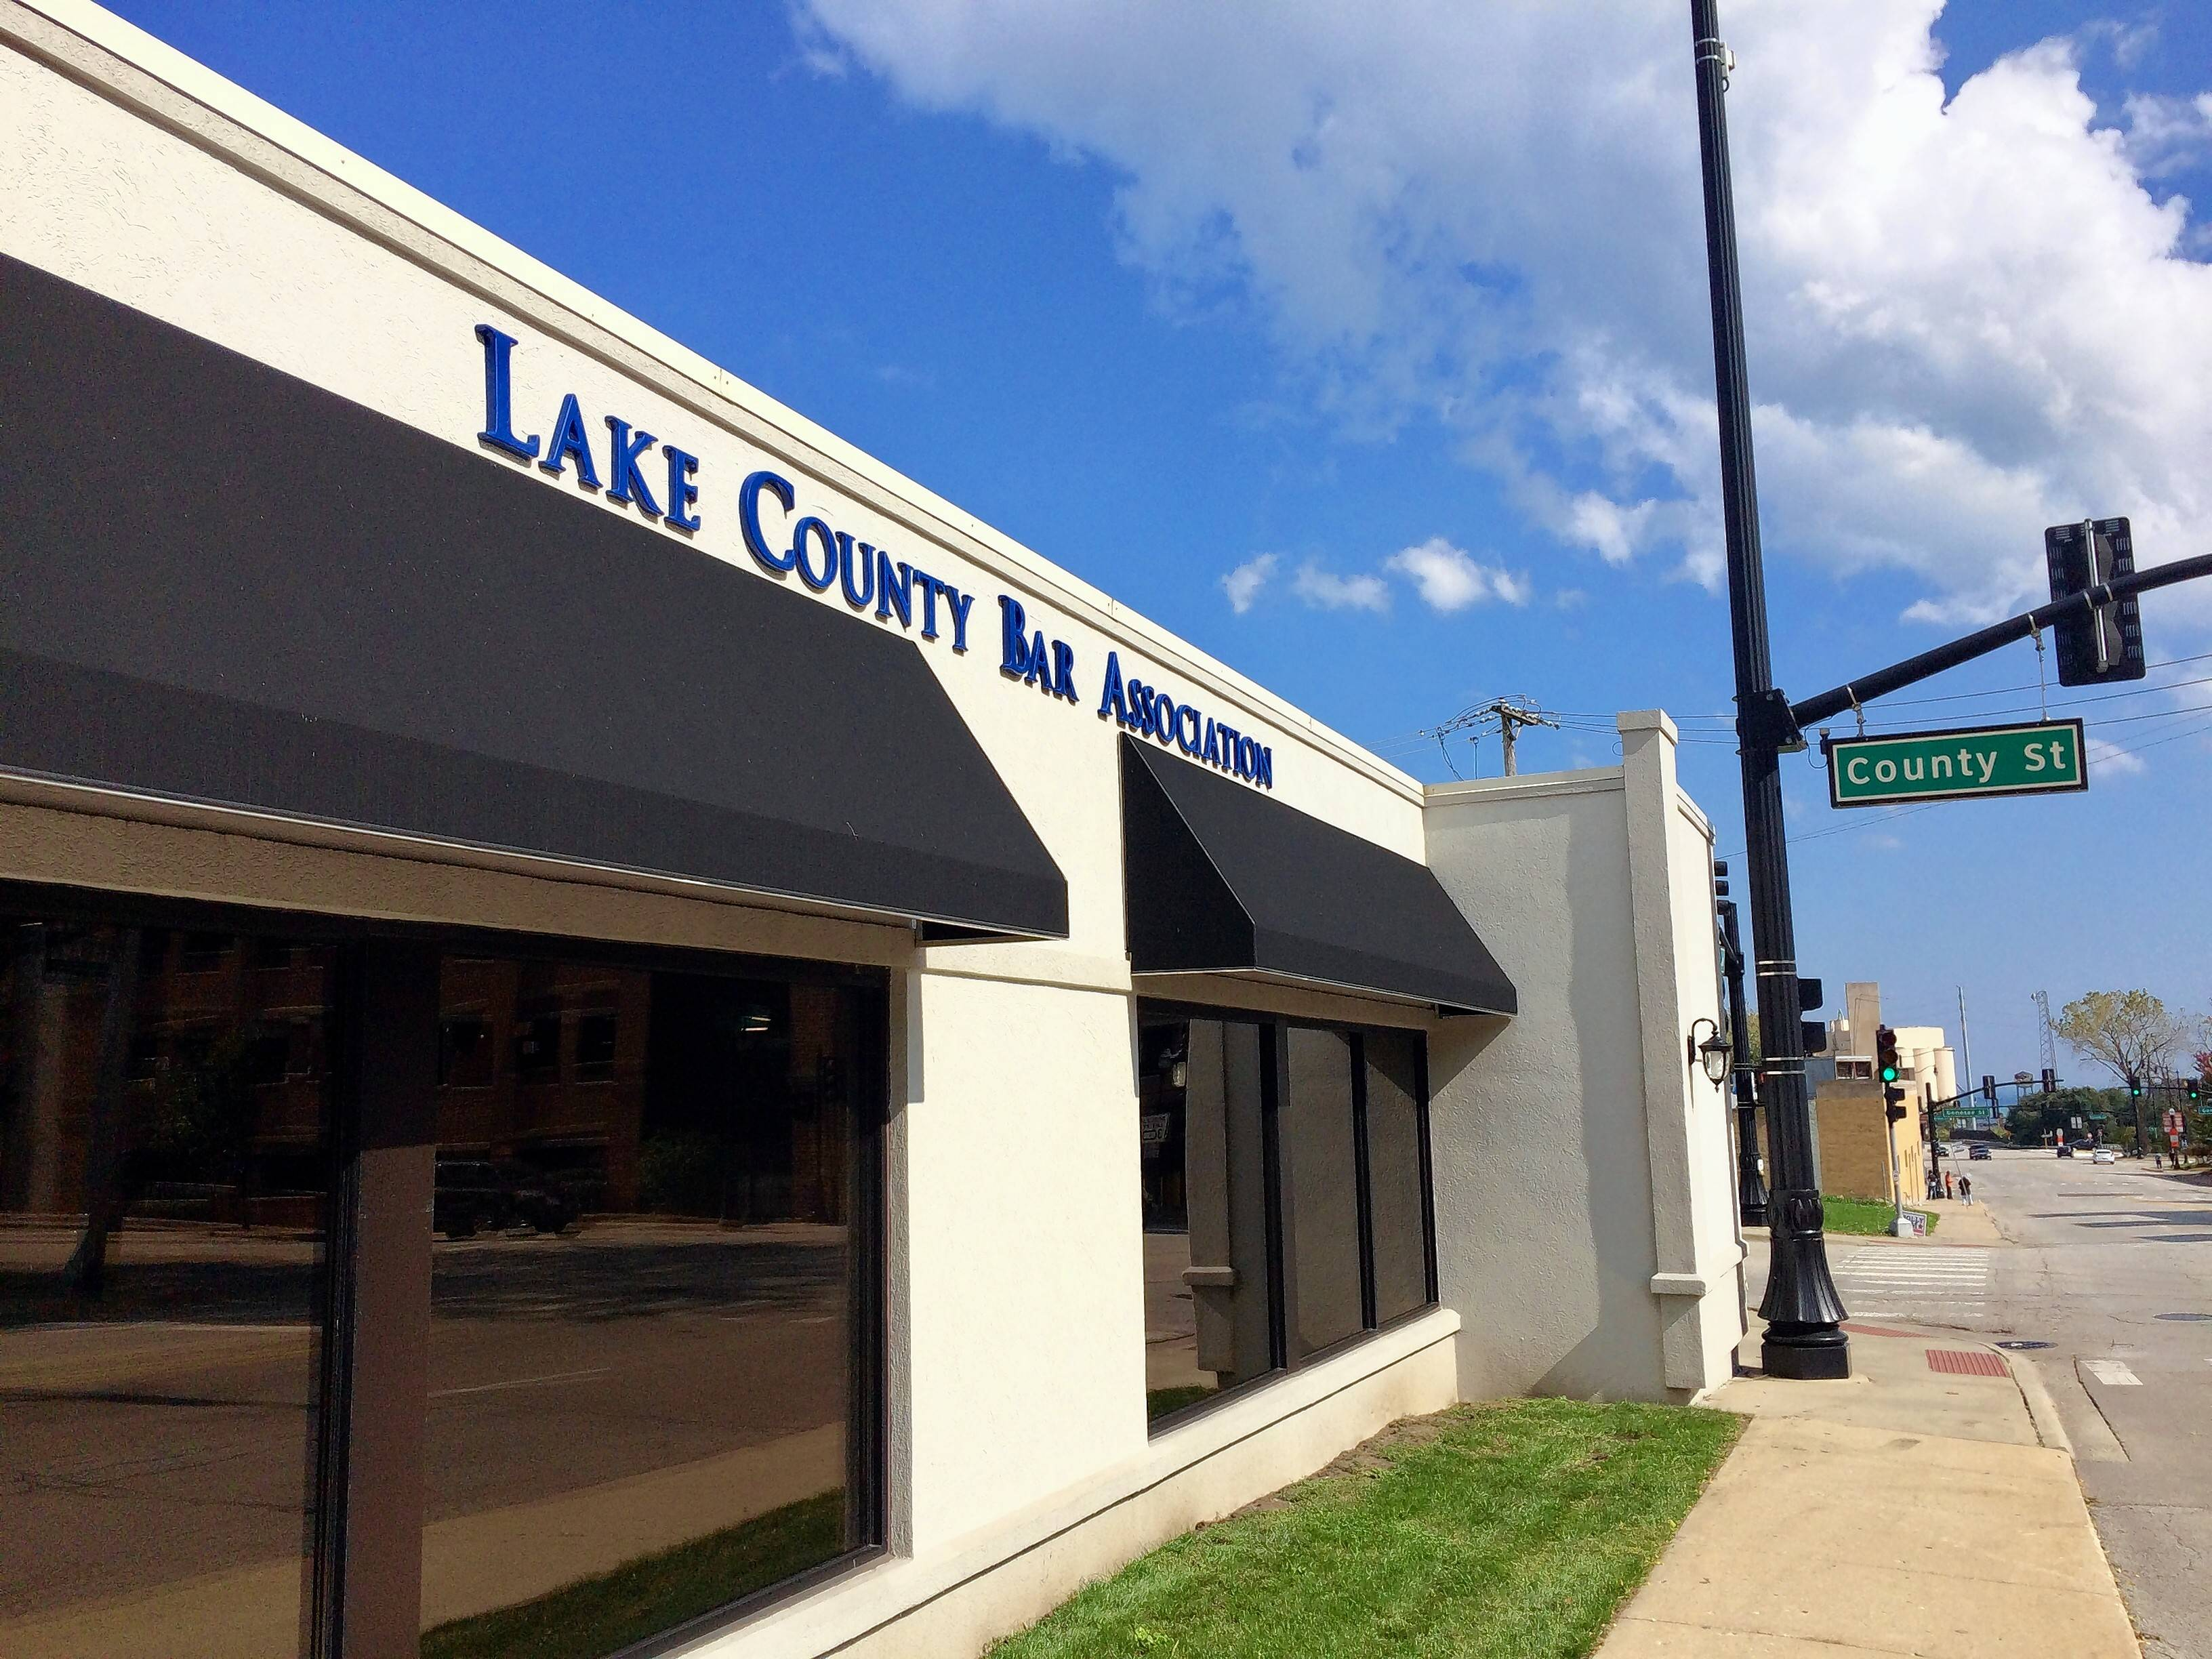 Christopher Boadt, former executive director of the Lake County Bar Association, received two years of probation after admitting Tuesday to stealing nearly $250,000 from the organization and its charitable foundation. This is the bar association's Waukegan office.